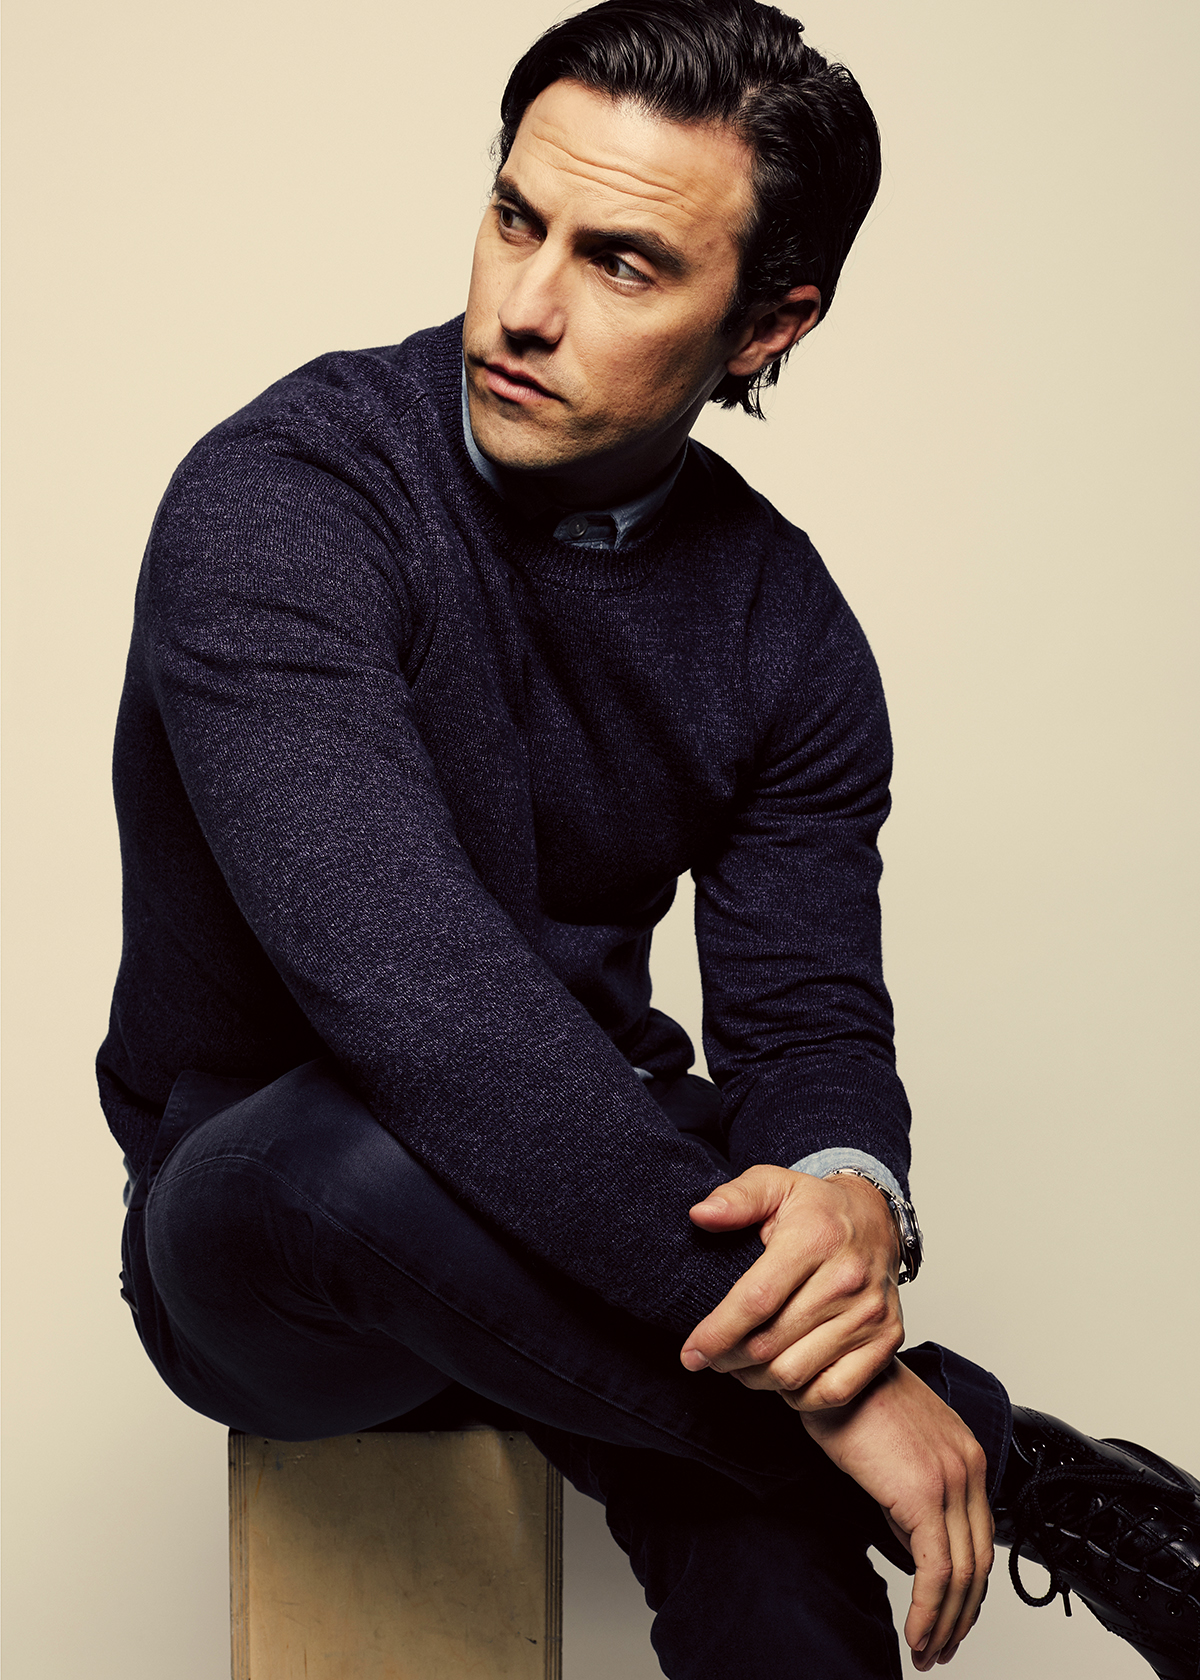 A Few Things to Know About O C  Native and TV Star Milo Ventimiglia Photograph by Erik Tanner